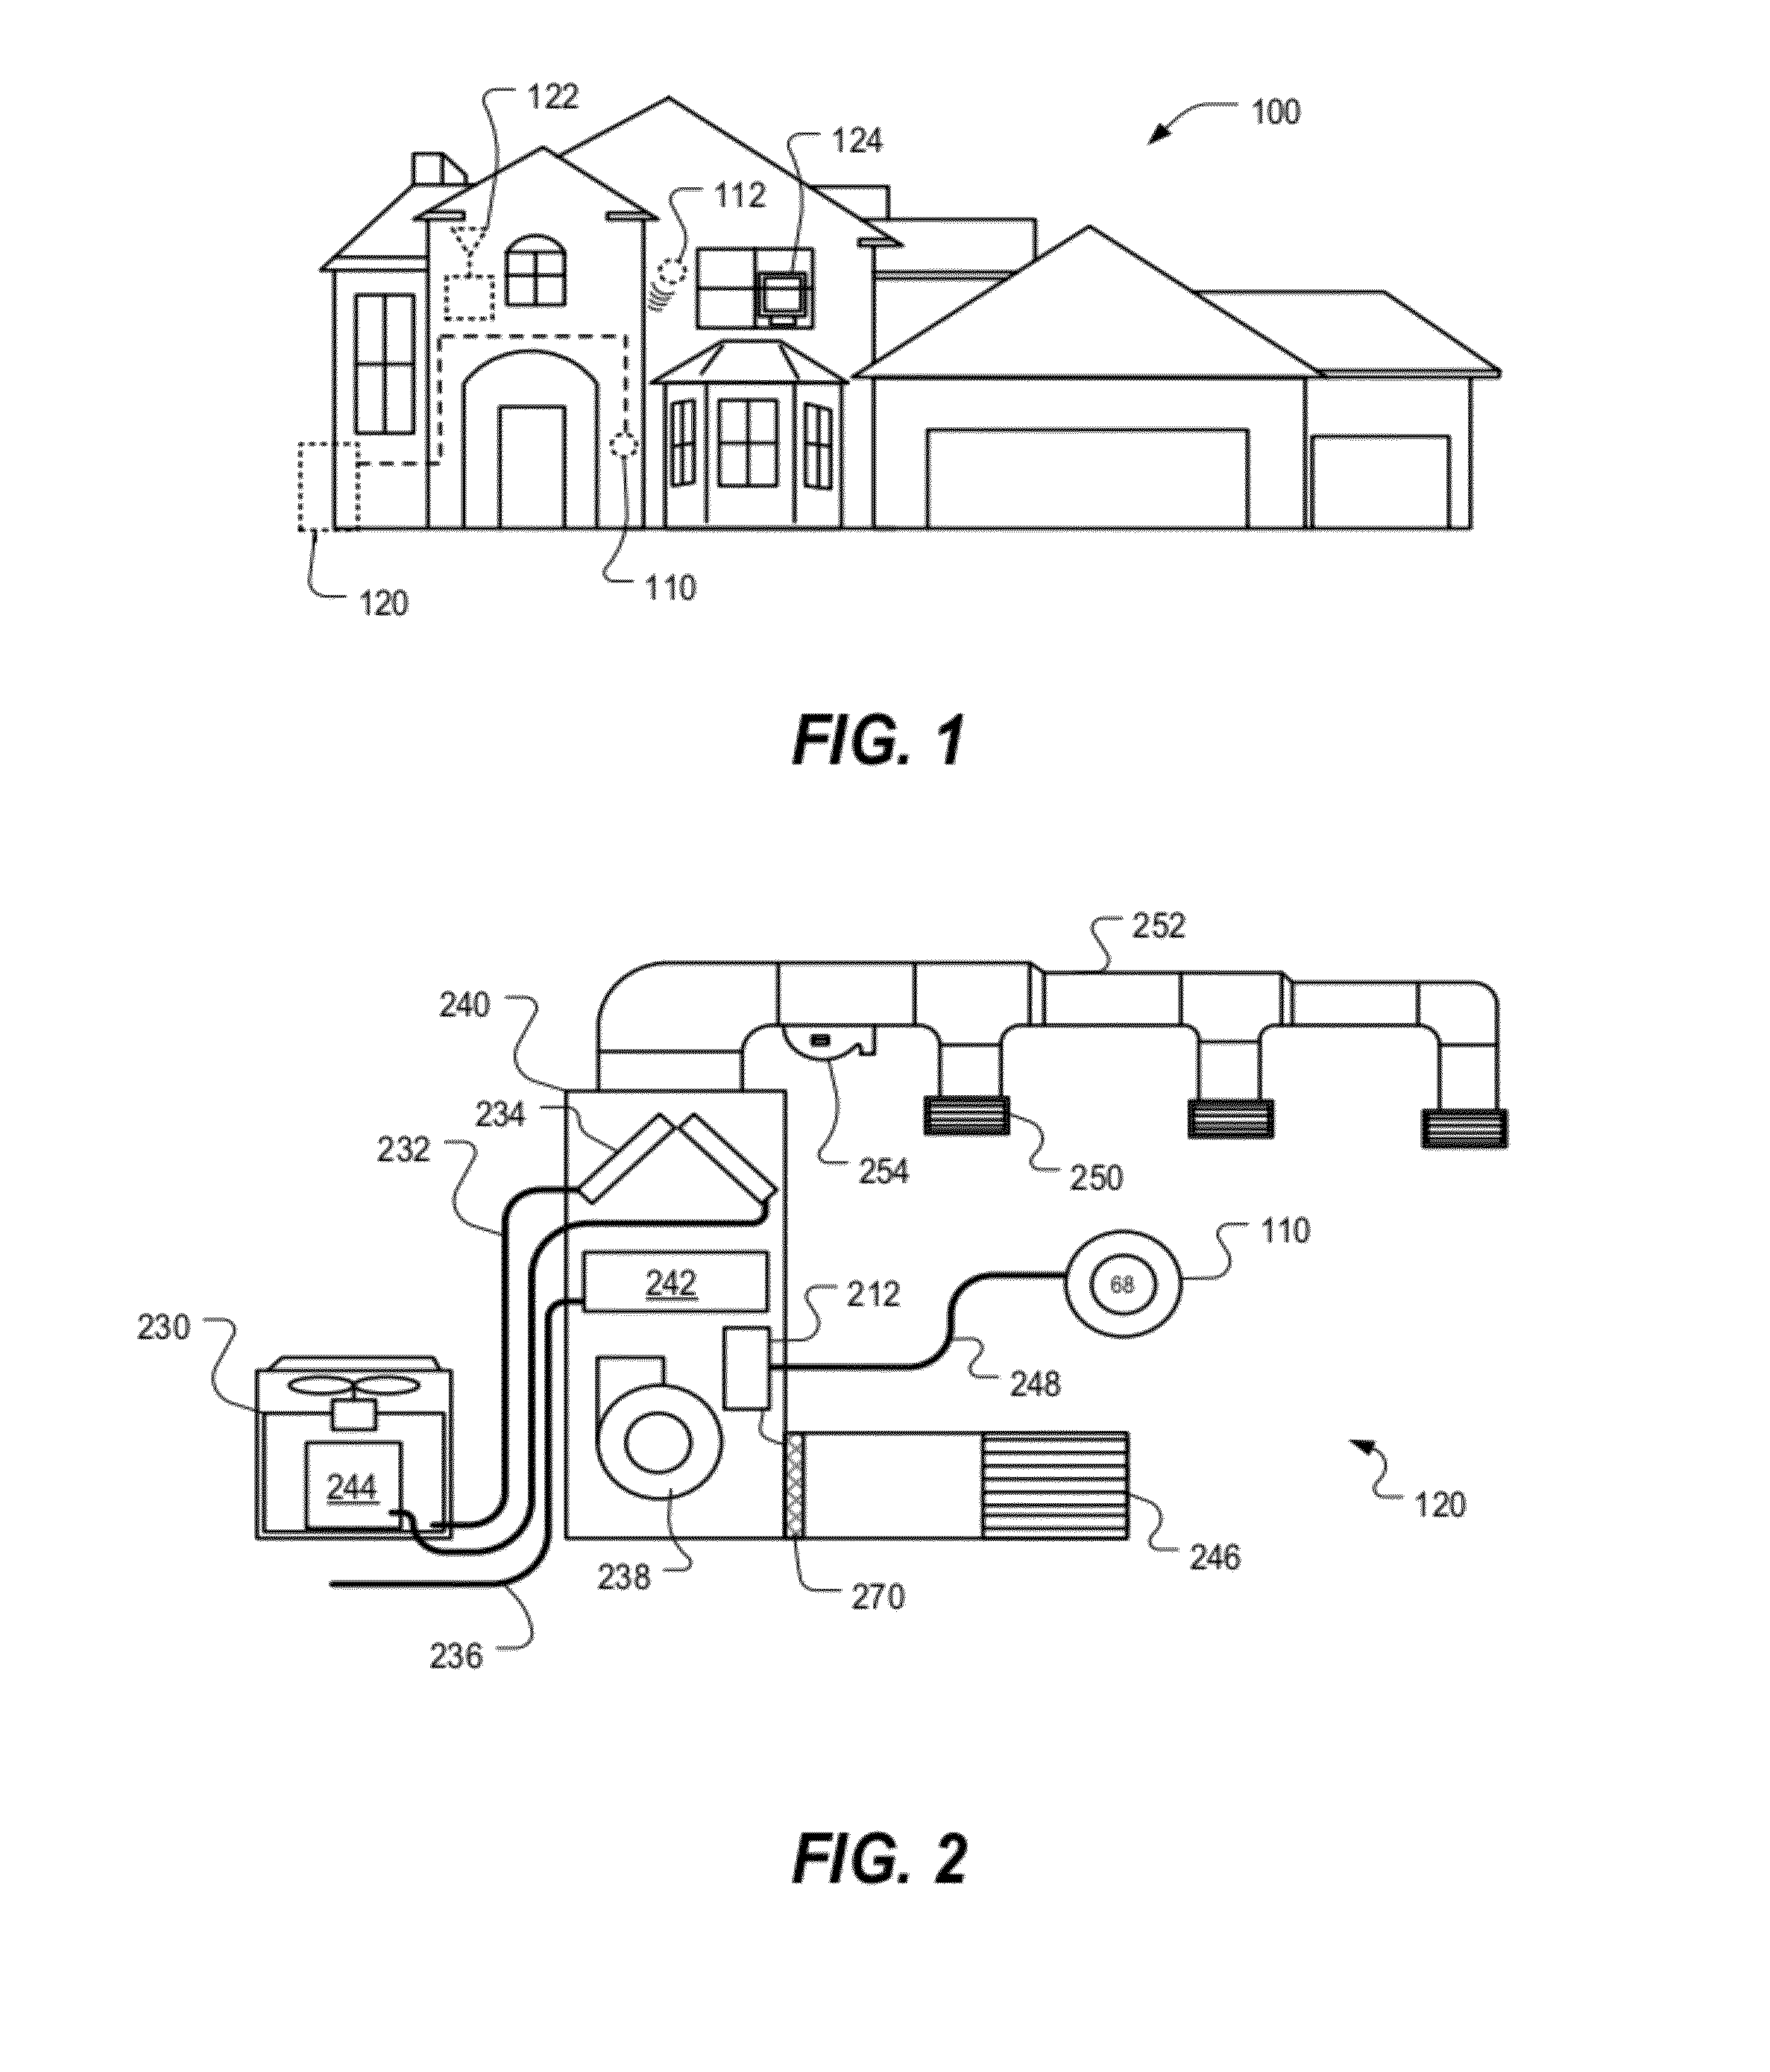 P 0996b43f8038021a as well T12908245 Need make 110 volt leg from existing 220 besides Happy Halloween Coloring Page also Electric Hot Water Heater Wiring Diagram additionally 485945 Multiple Thermostats No Heat. on house thermostat location